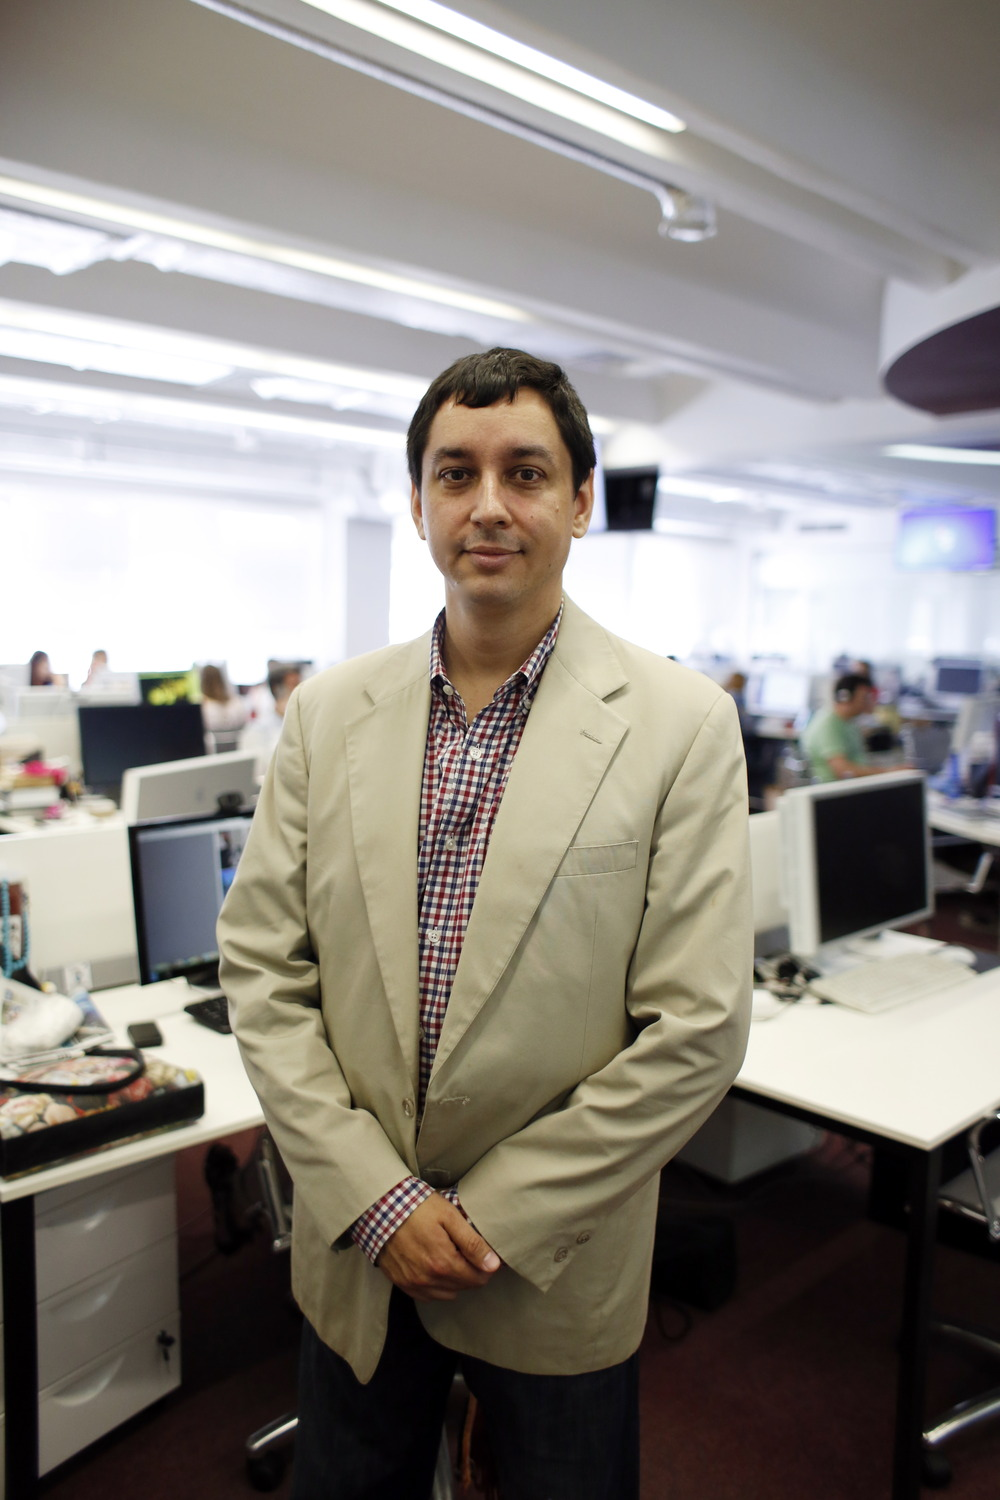 Dominic Basulto in the newsroom. (credit: RBTH)